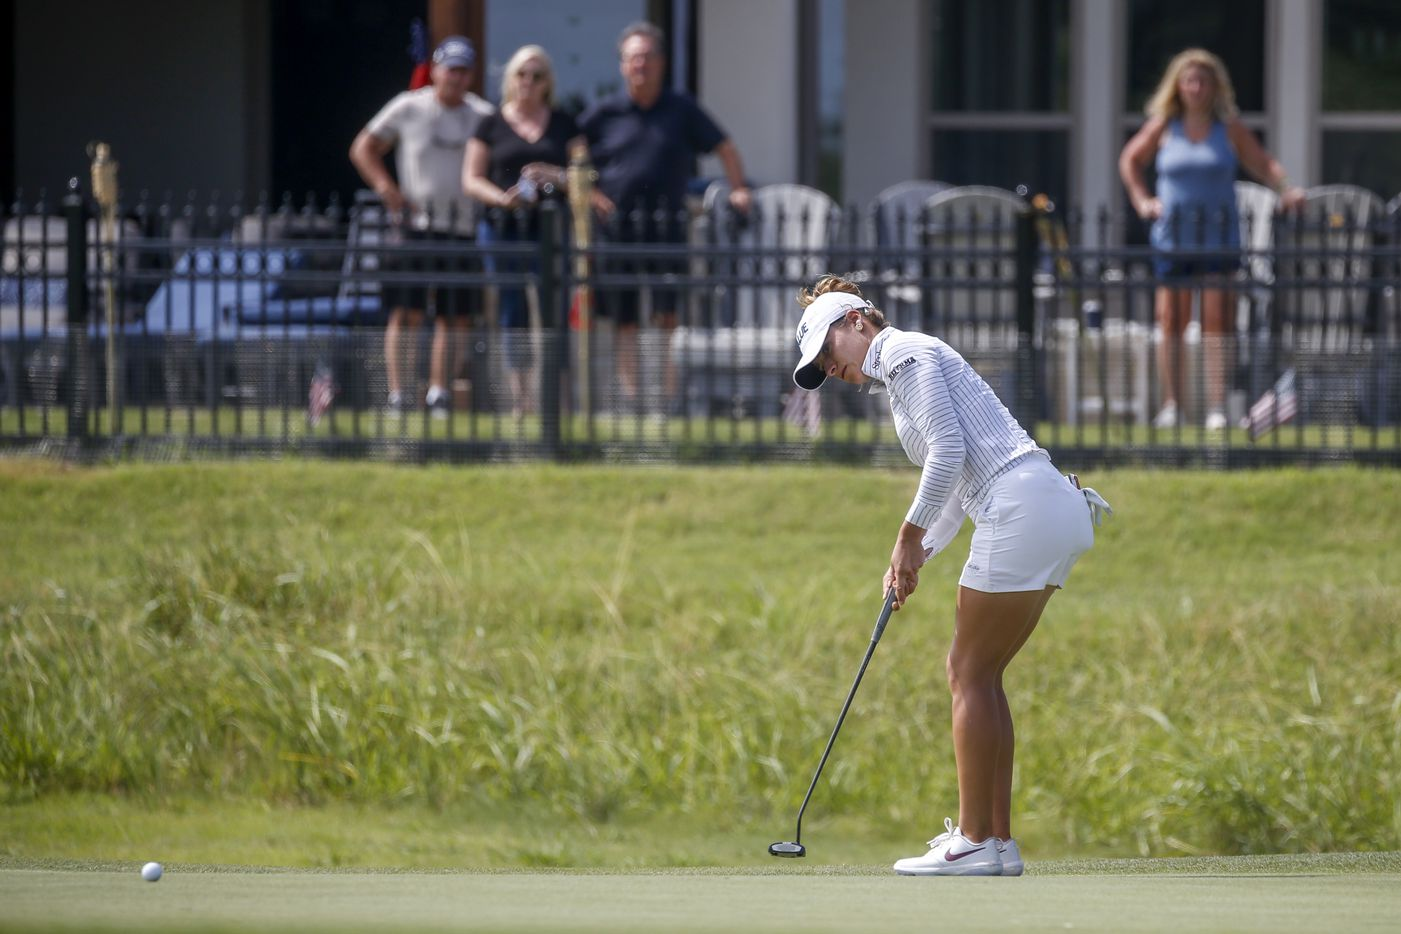 Professional golfer Gaby Lopez puts on the No. 2 green during the third round of the LPGA VOA Classic on Saturday, July 3, 2021, in The Colony, Texas. (Elias Valverde II/The Dallas Morning News)